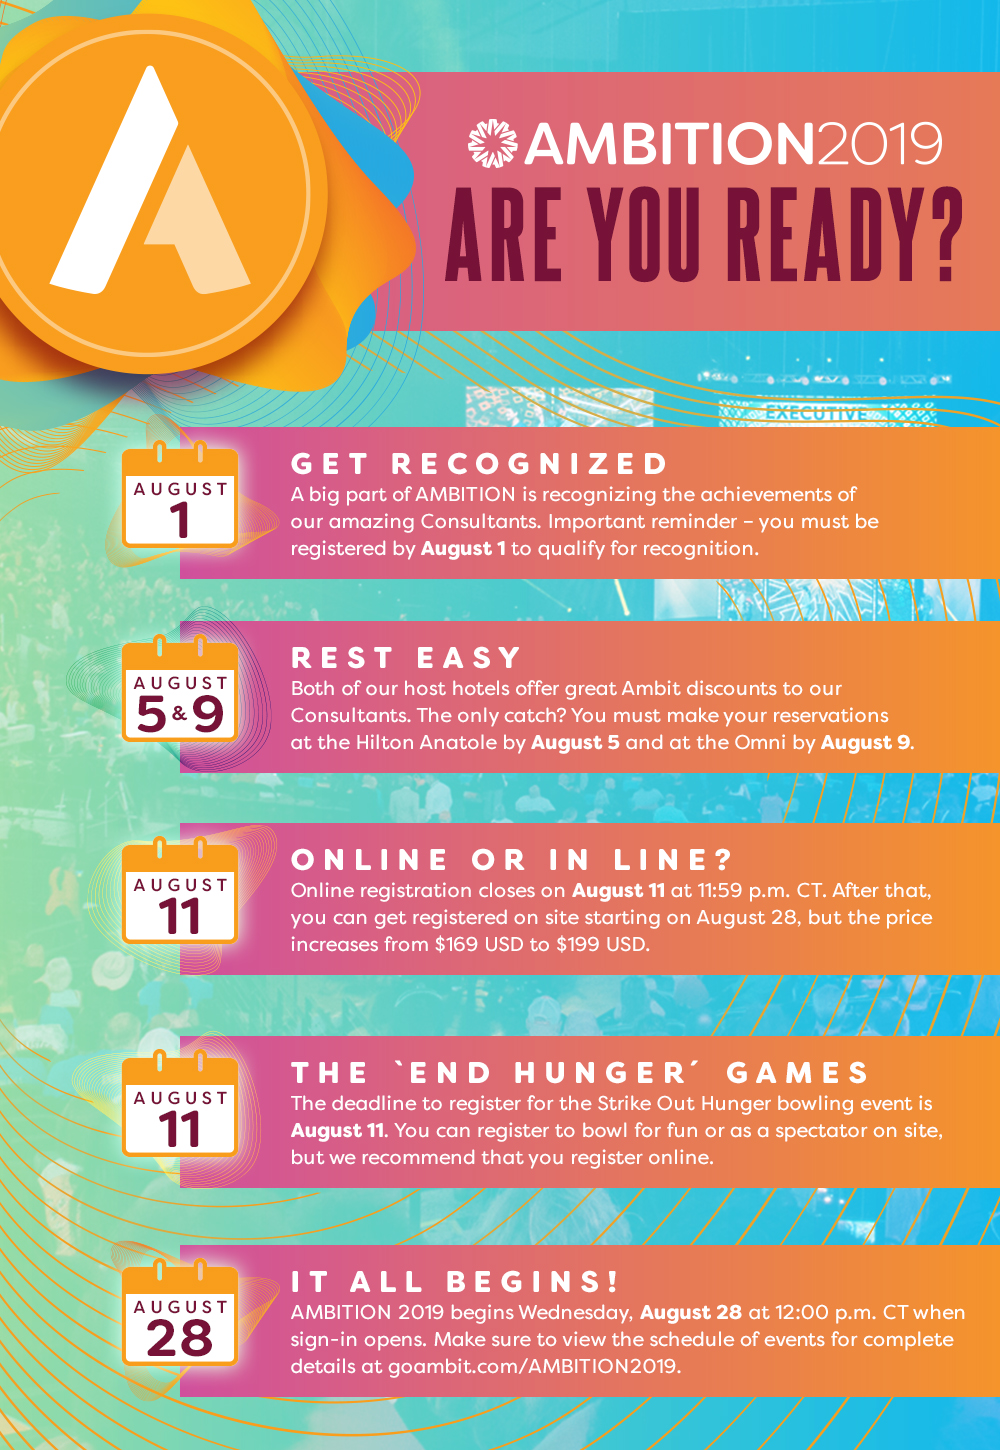 Infographic: AMBITION 2019 is less than 100 days away! Here are the key deadlines you need to know as we countdow